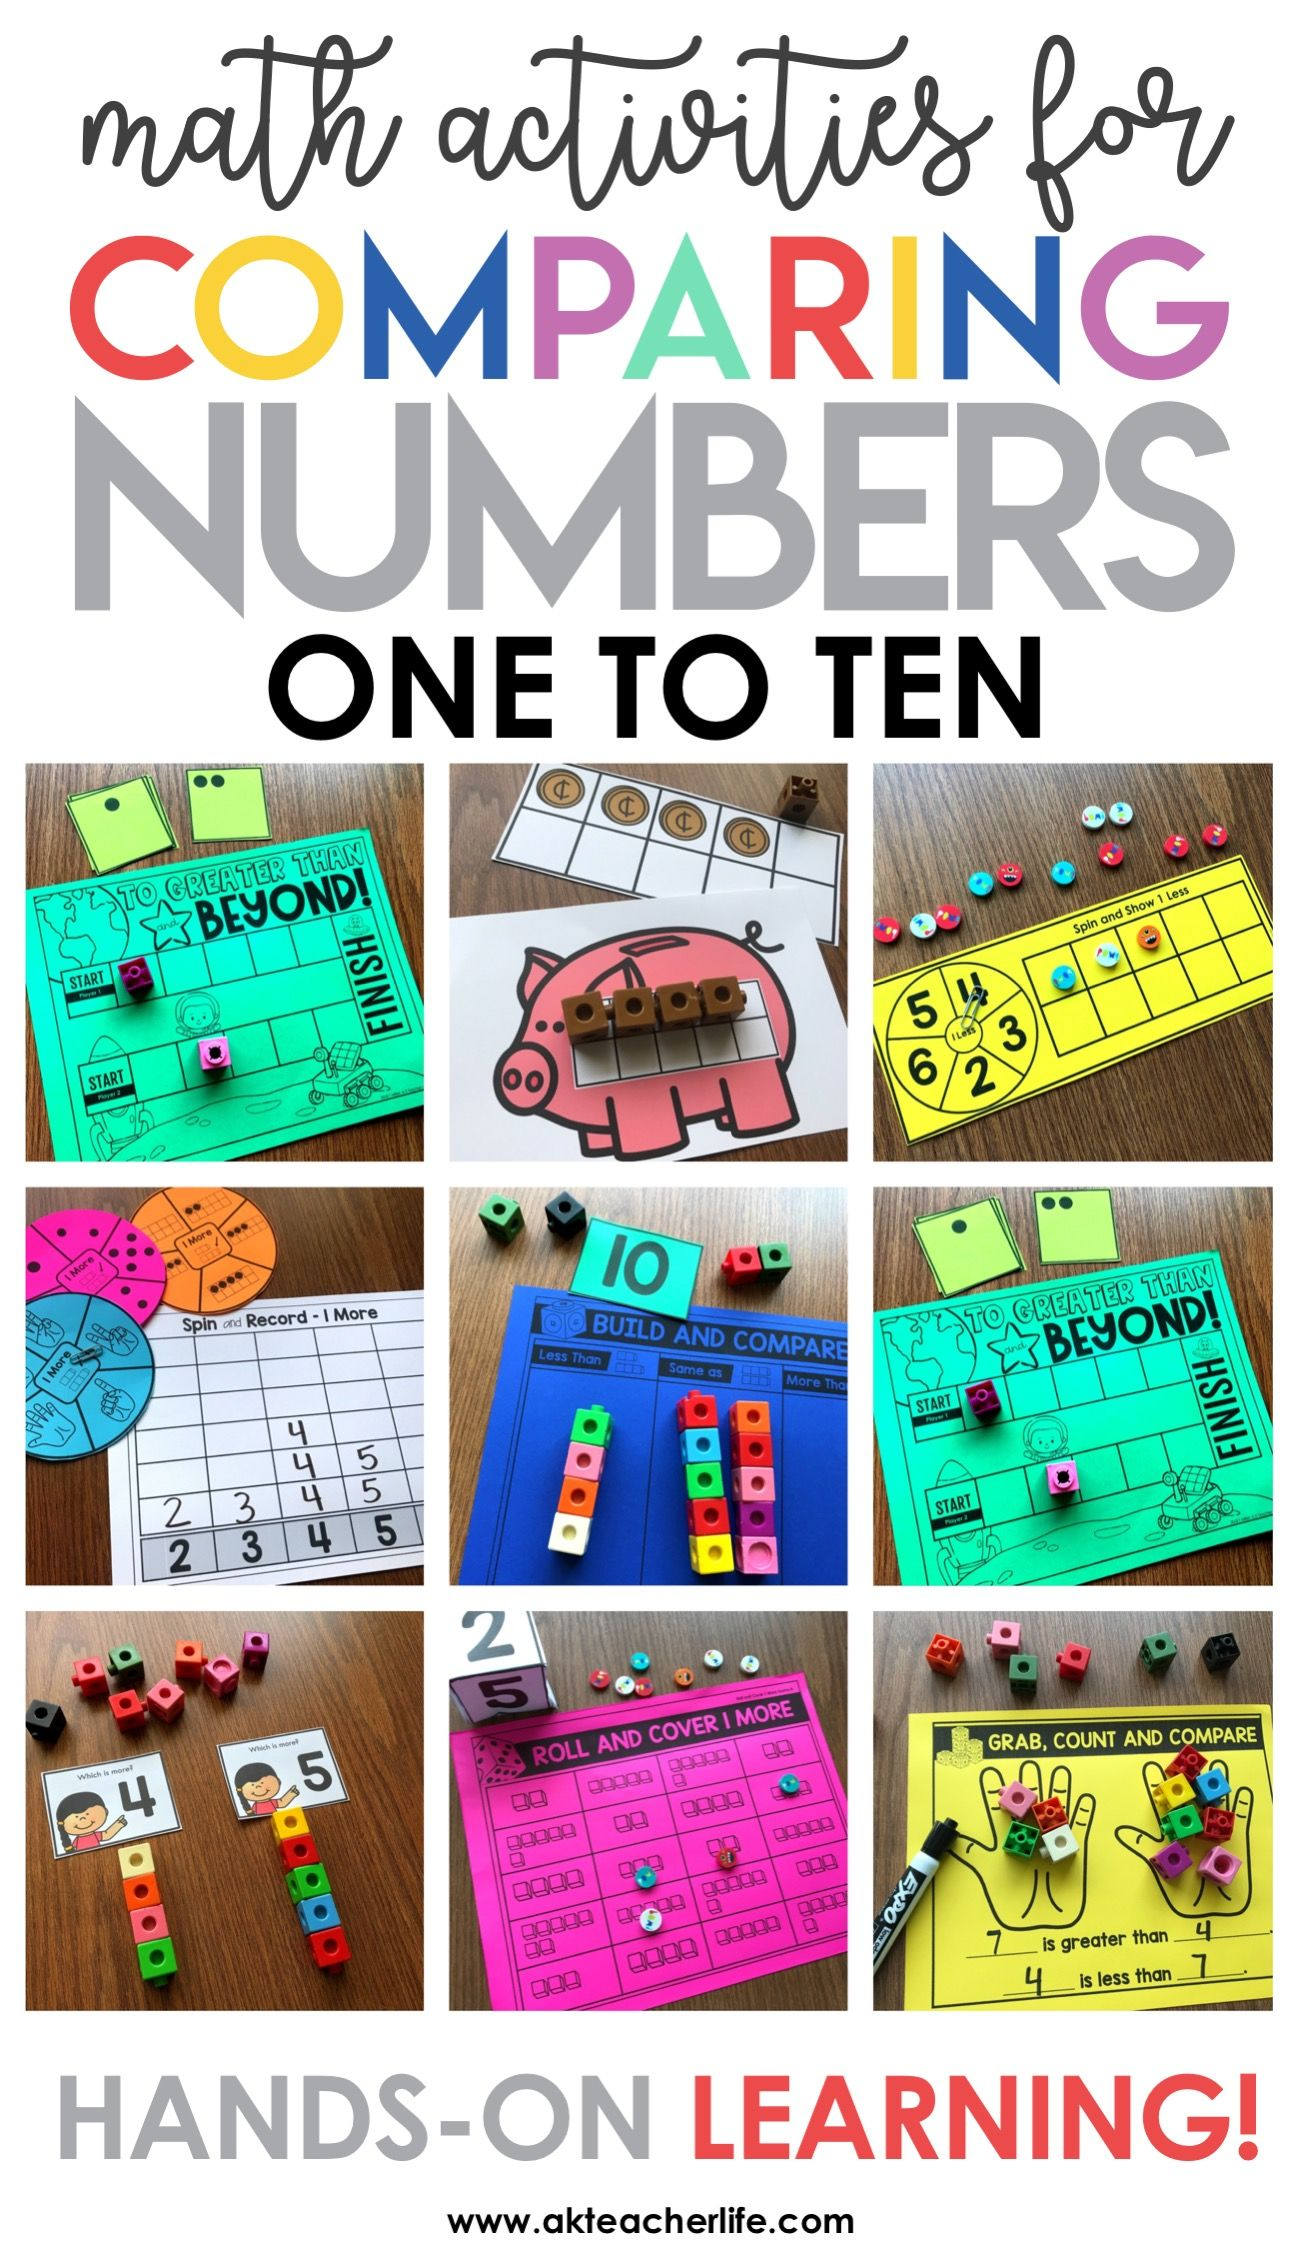 Math Center Activities For Comparing Numbers 1 To 10